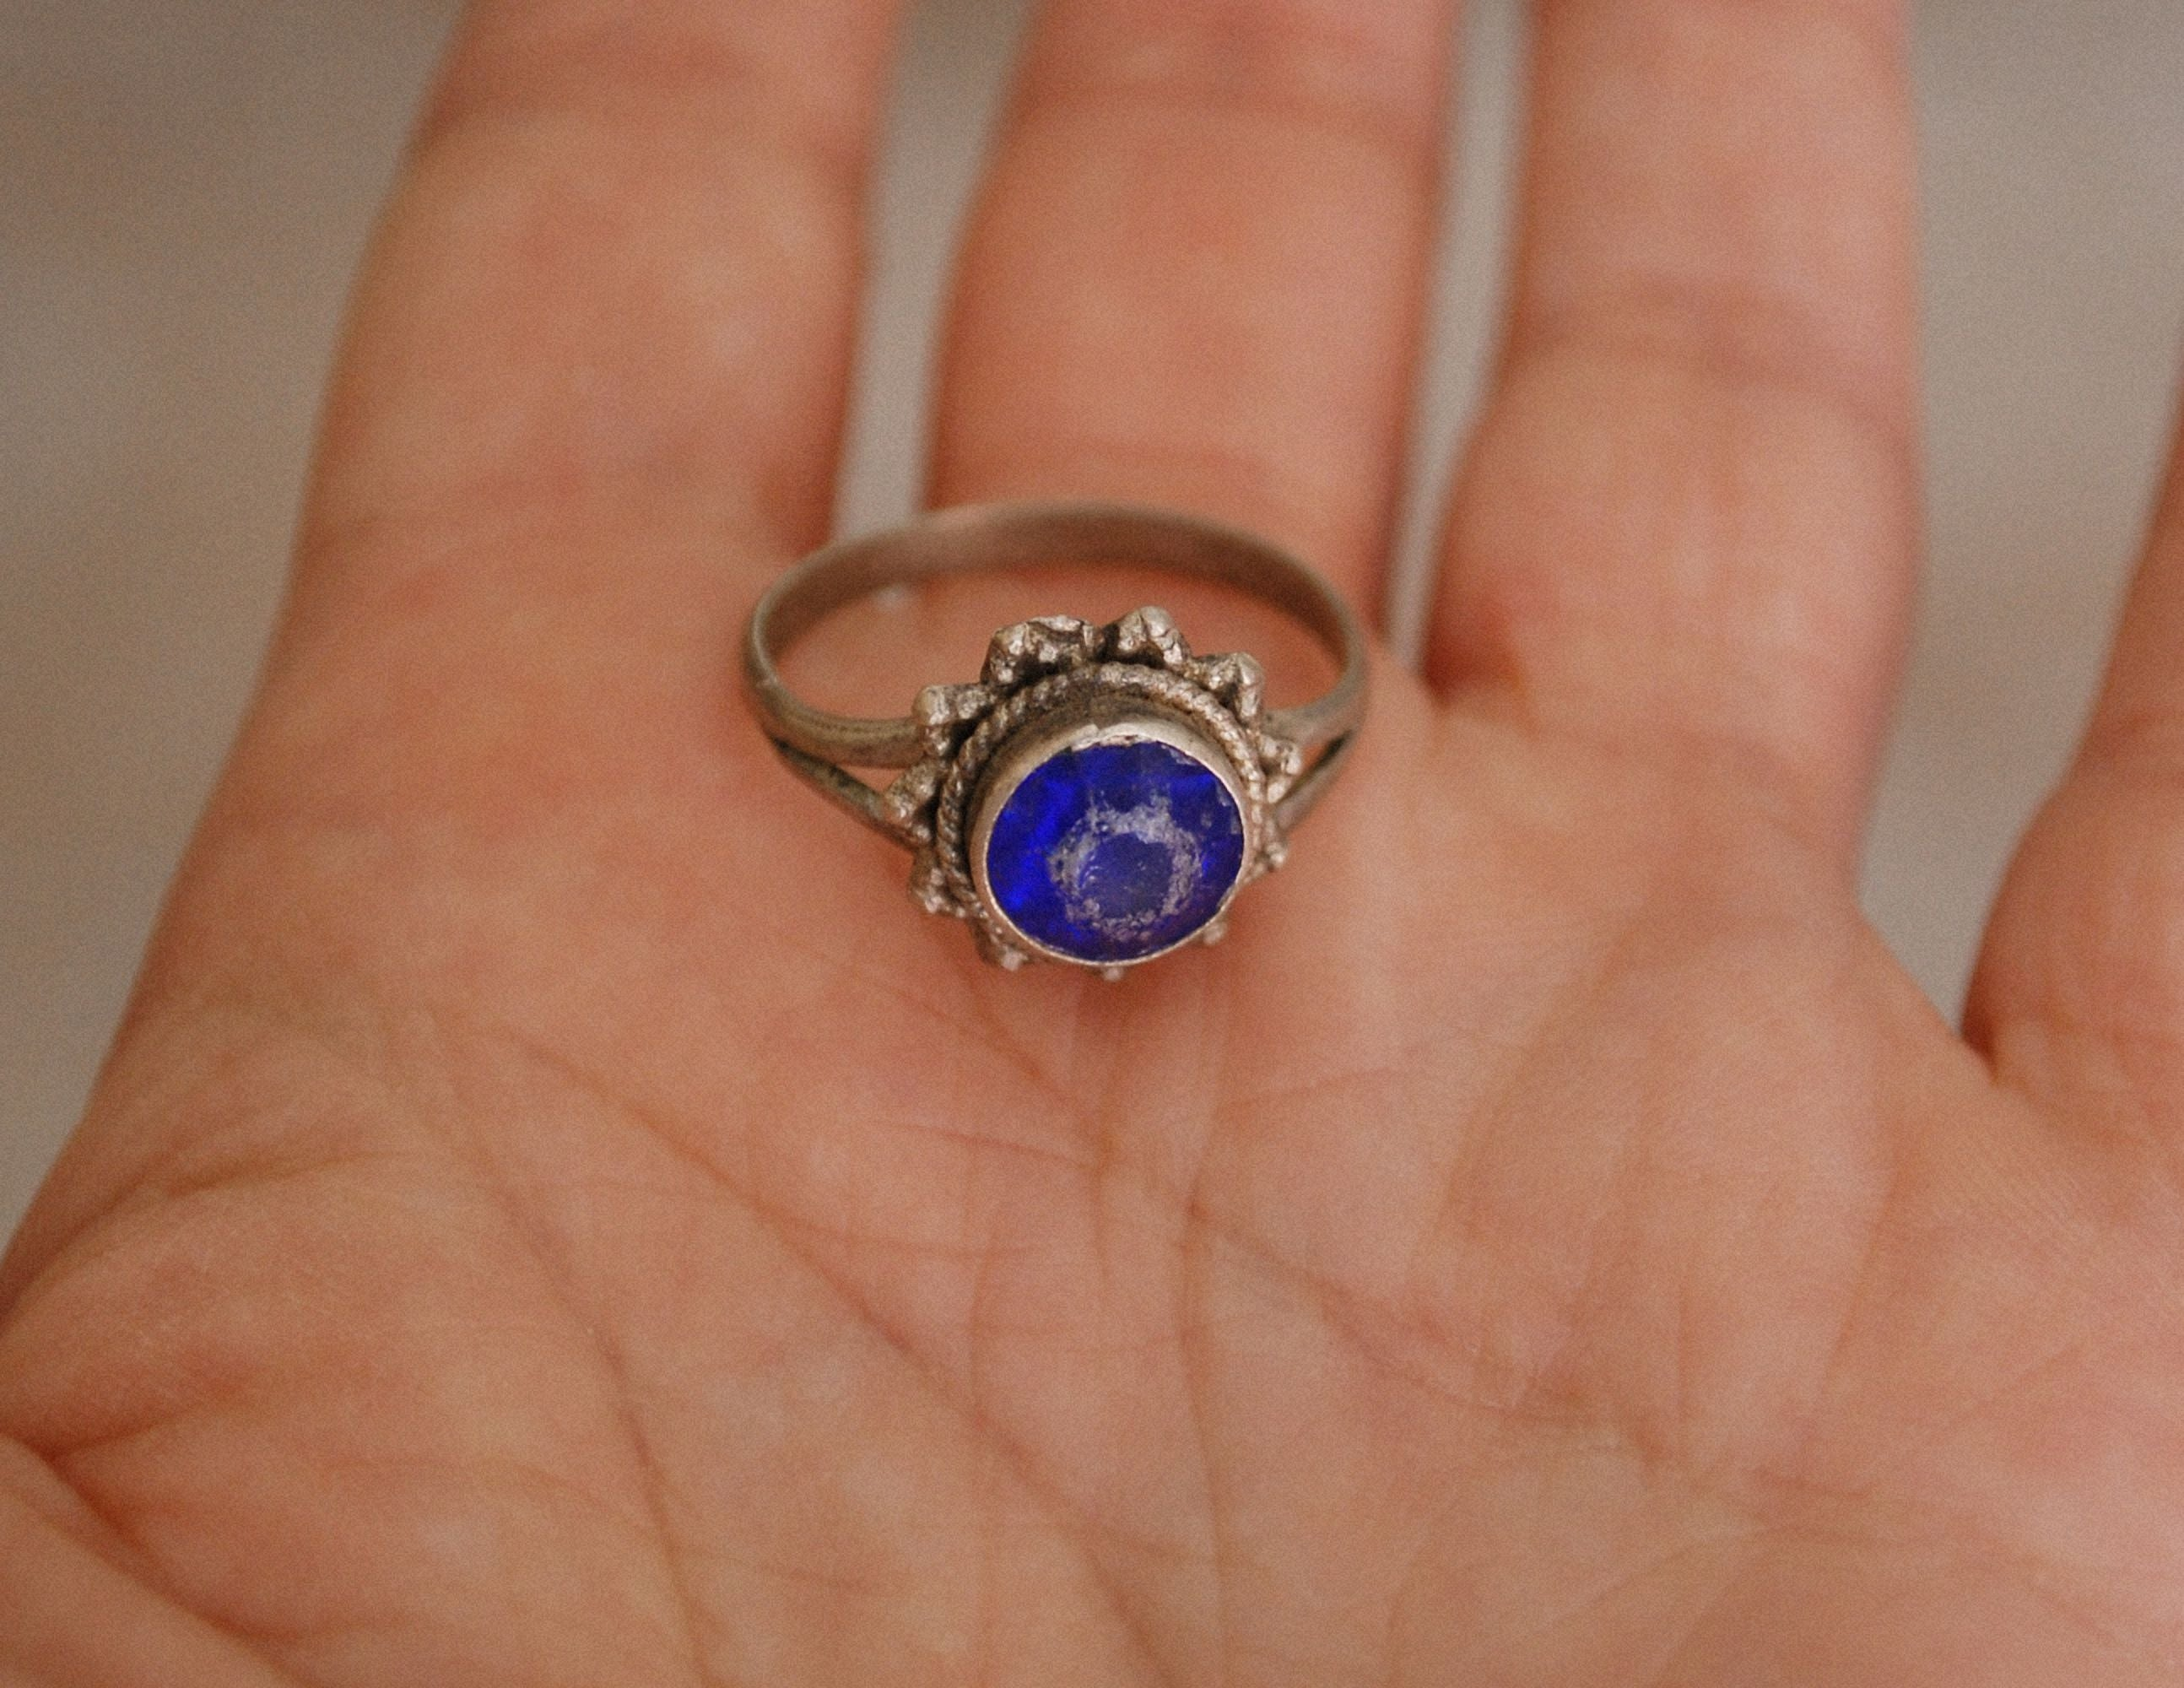 Ethnic Blue Glass Ring from India - Size 8.5